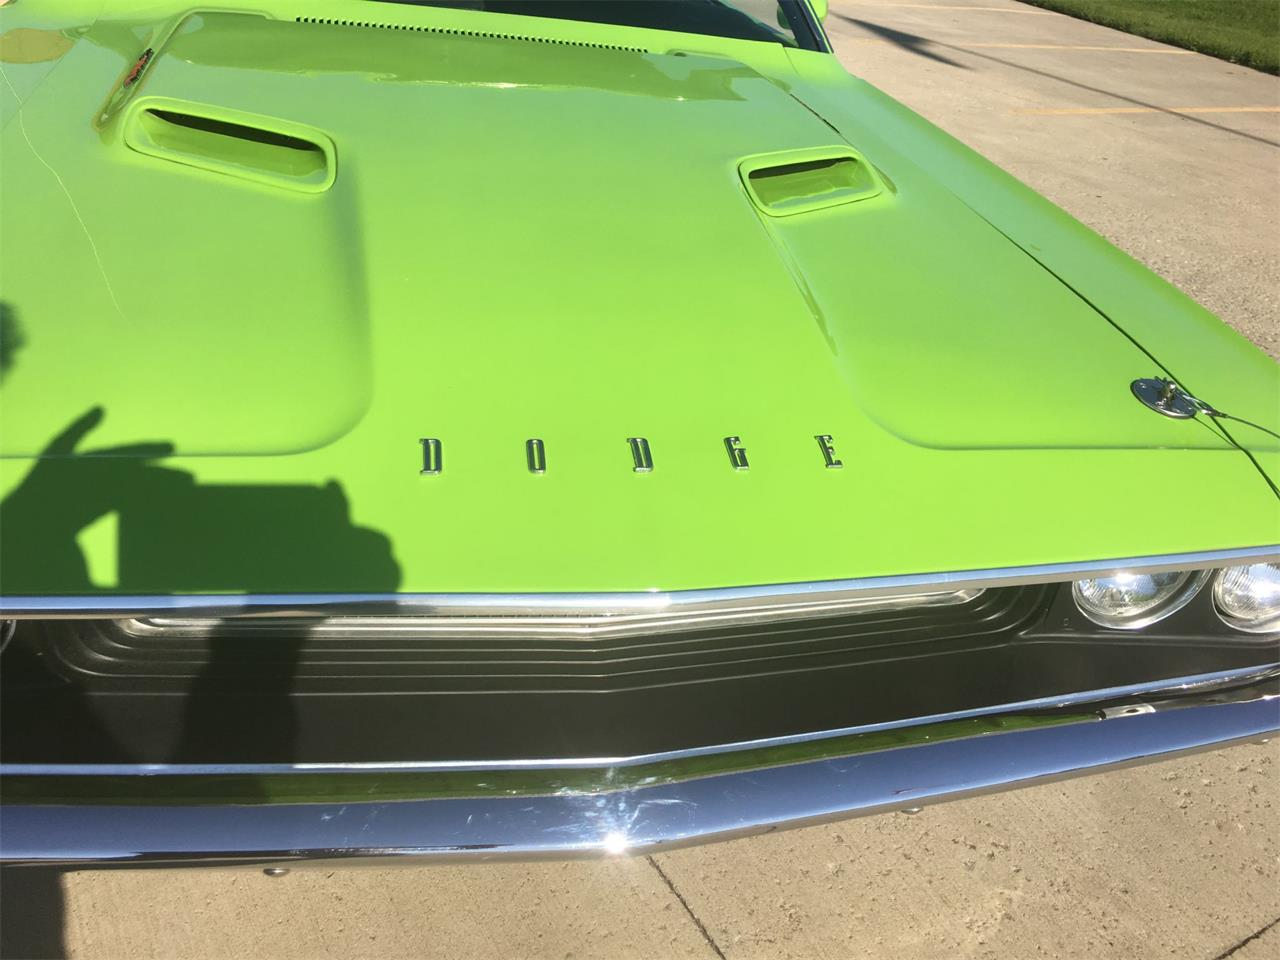 1970 Dodge Challenger R/T for sale in Annandale, MN – photo 69